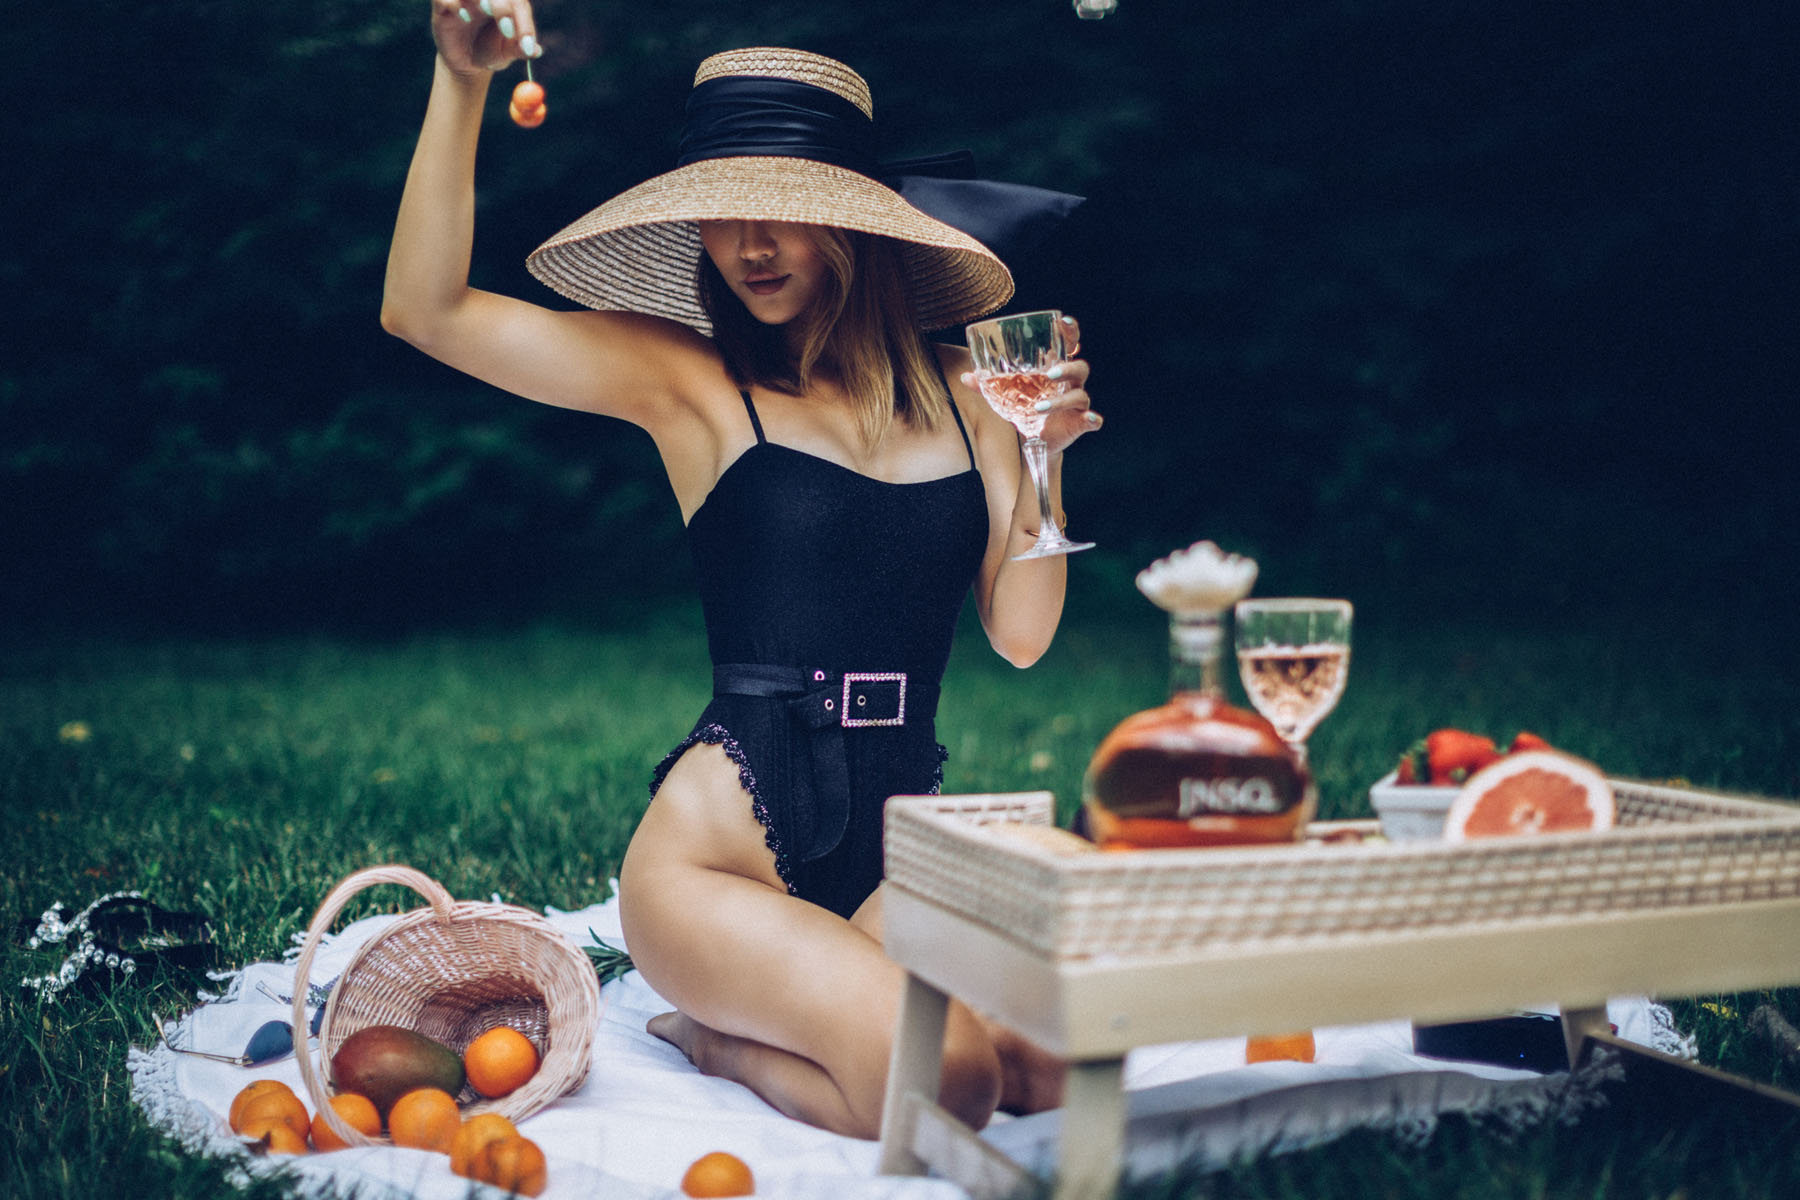 fashion girl's guide to entertaining, jnsq wines, jnsq rose wine, summer rose, black belted bikini, wide brim hat // Notjessfashion.com